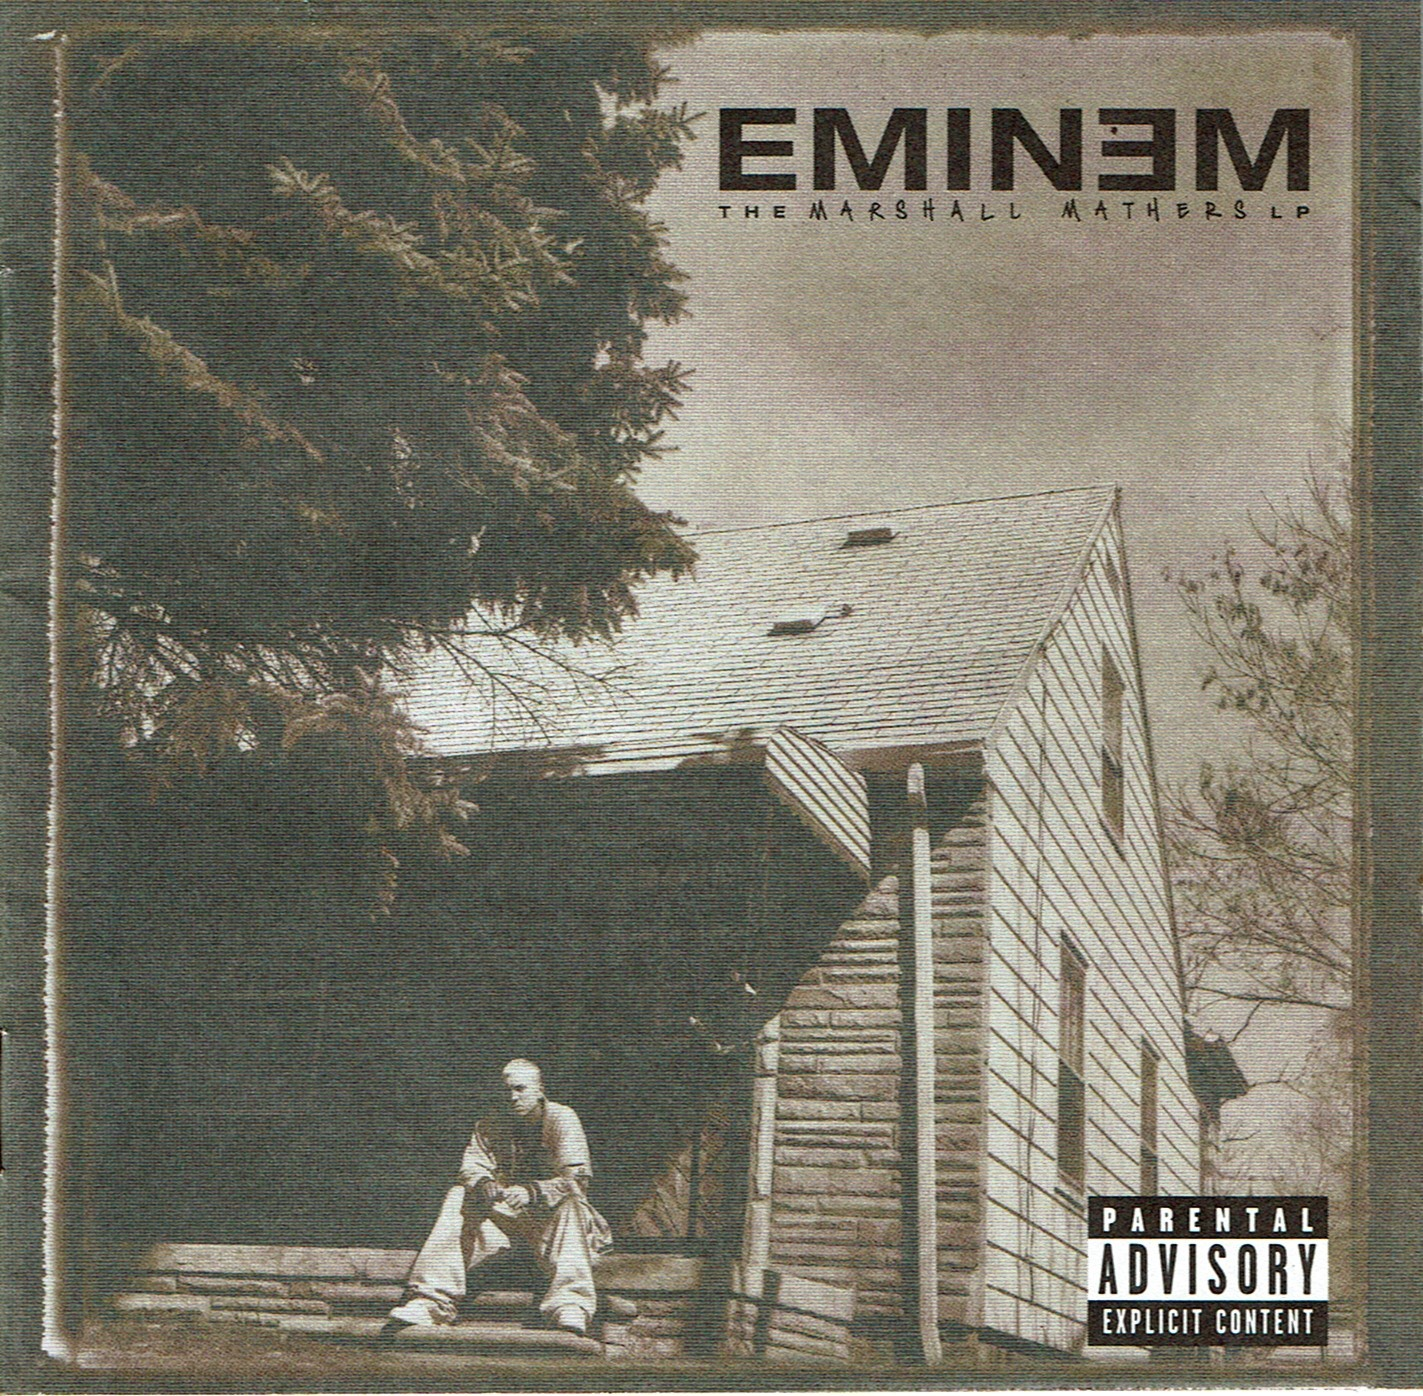 Eminem - The Marshall Mathers CD [Explicit] (Audio CD 2000)